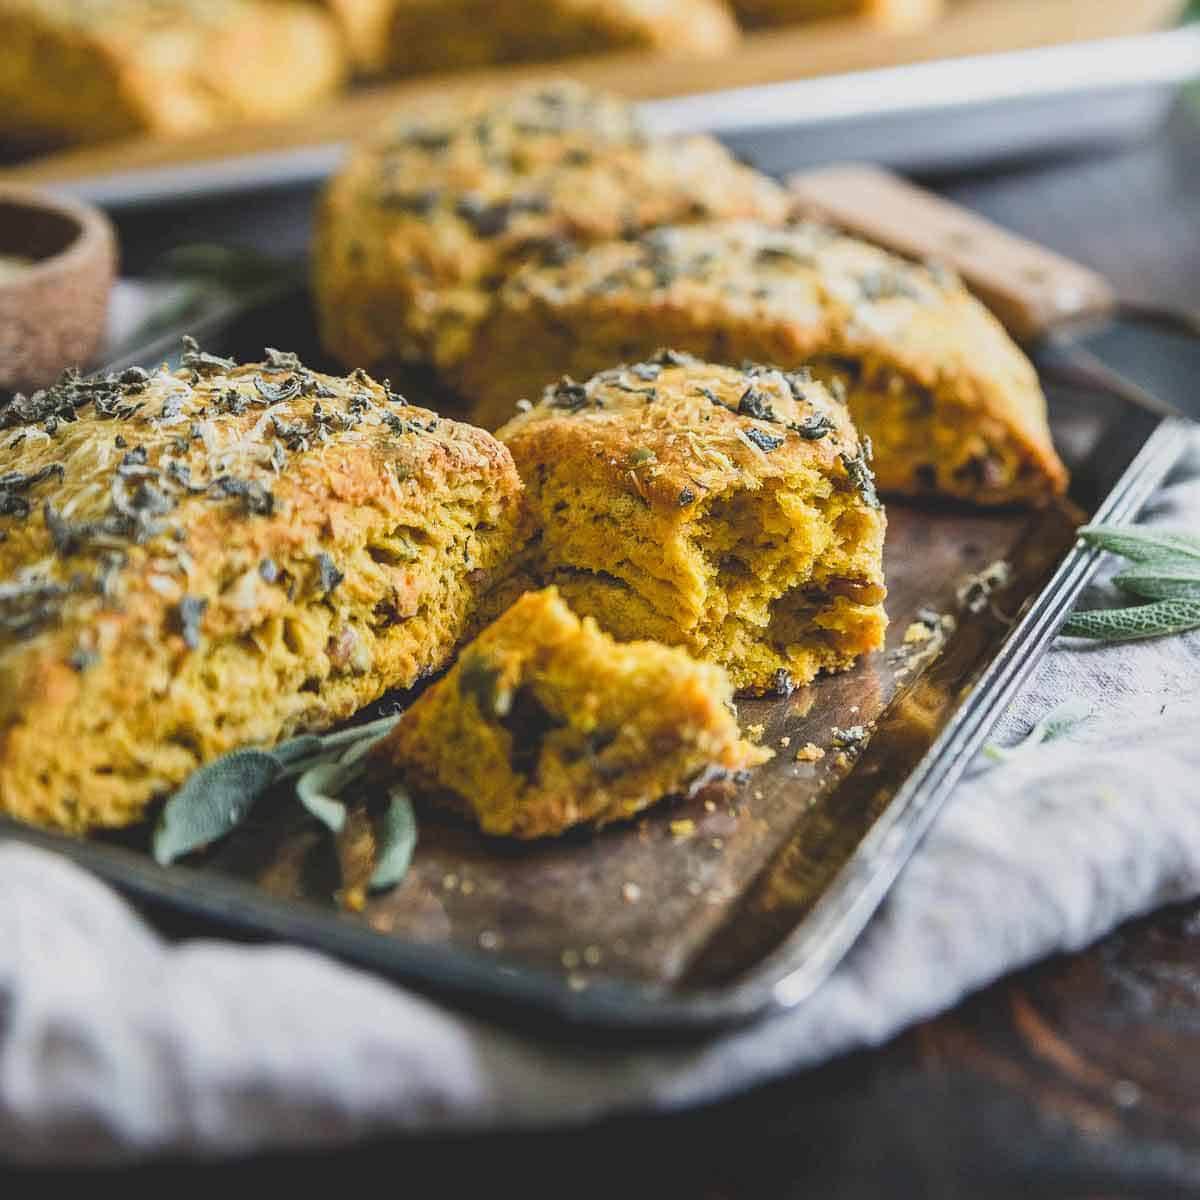 Buttery, flaky and filled with savory flavors, these pumpkin scones are perfect for the holidays.